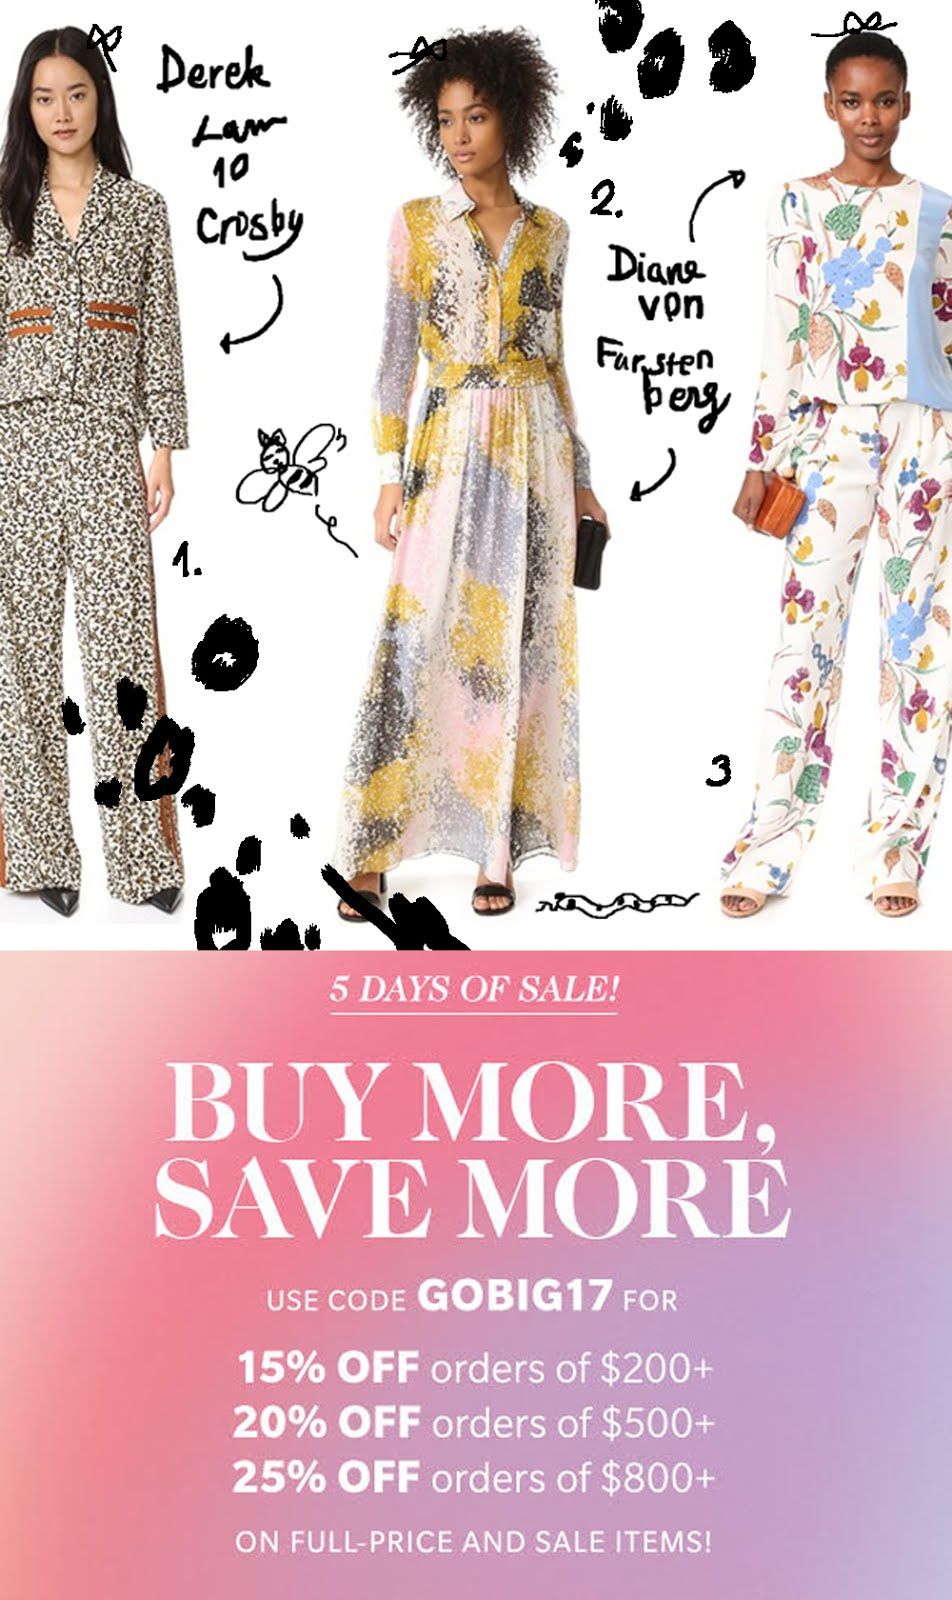 GO SHOPBOP BIG SALE!!! 2/28-3/4